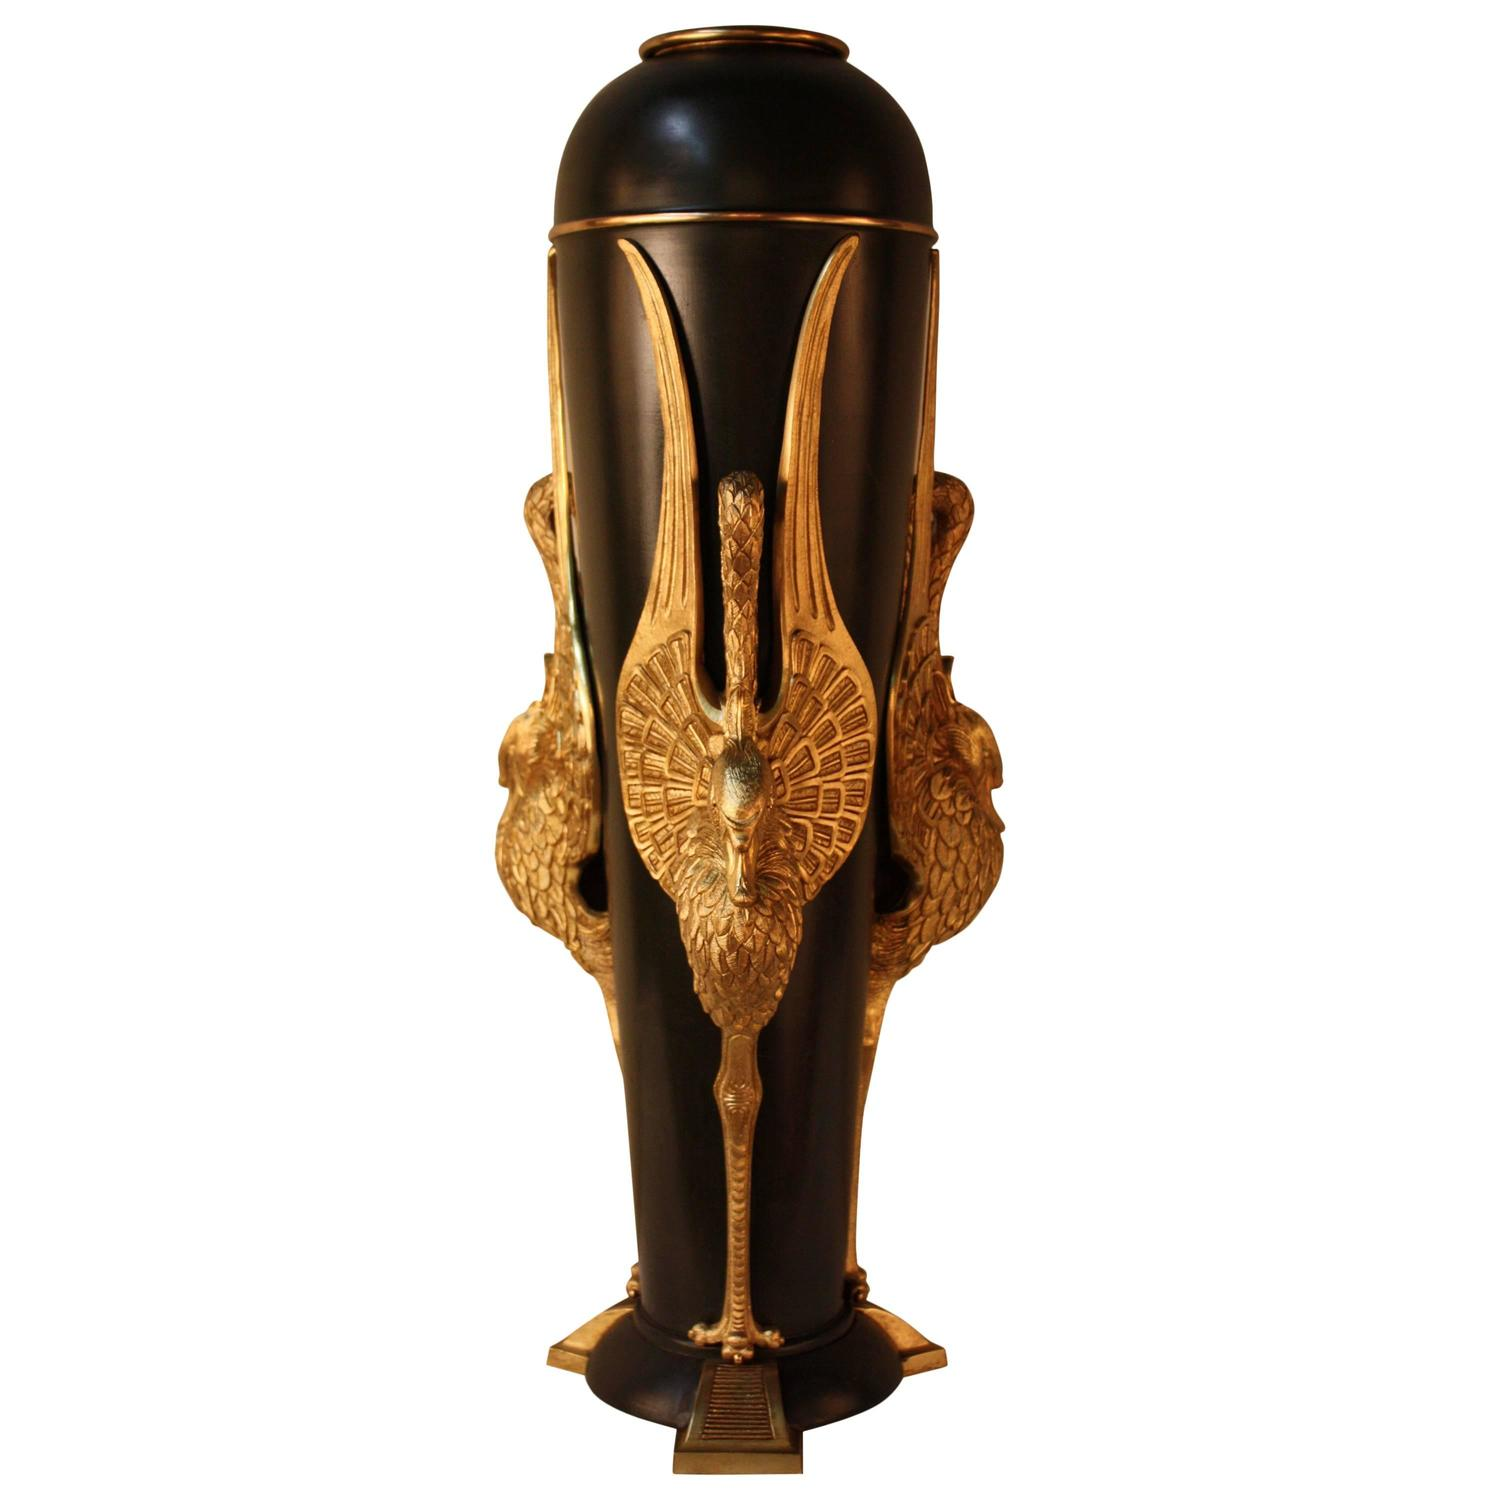 grand french bronze empire vase at 1stdibs. Black Bedroom Furniture Sets. Home Design Ideas